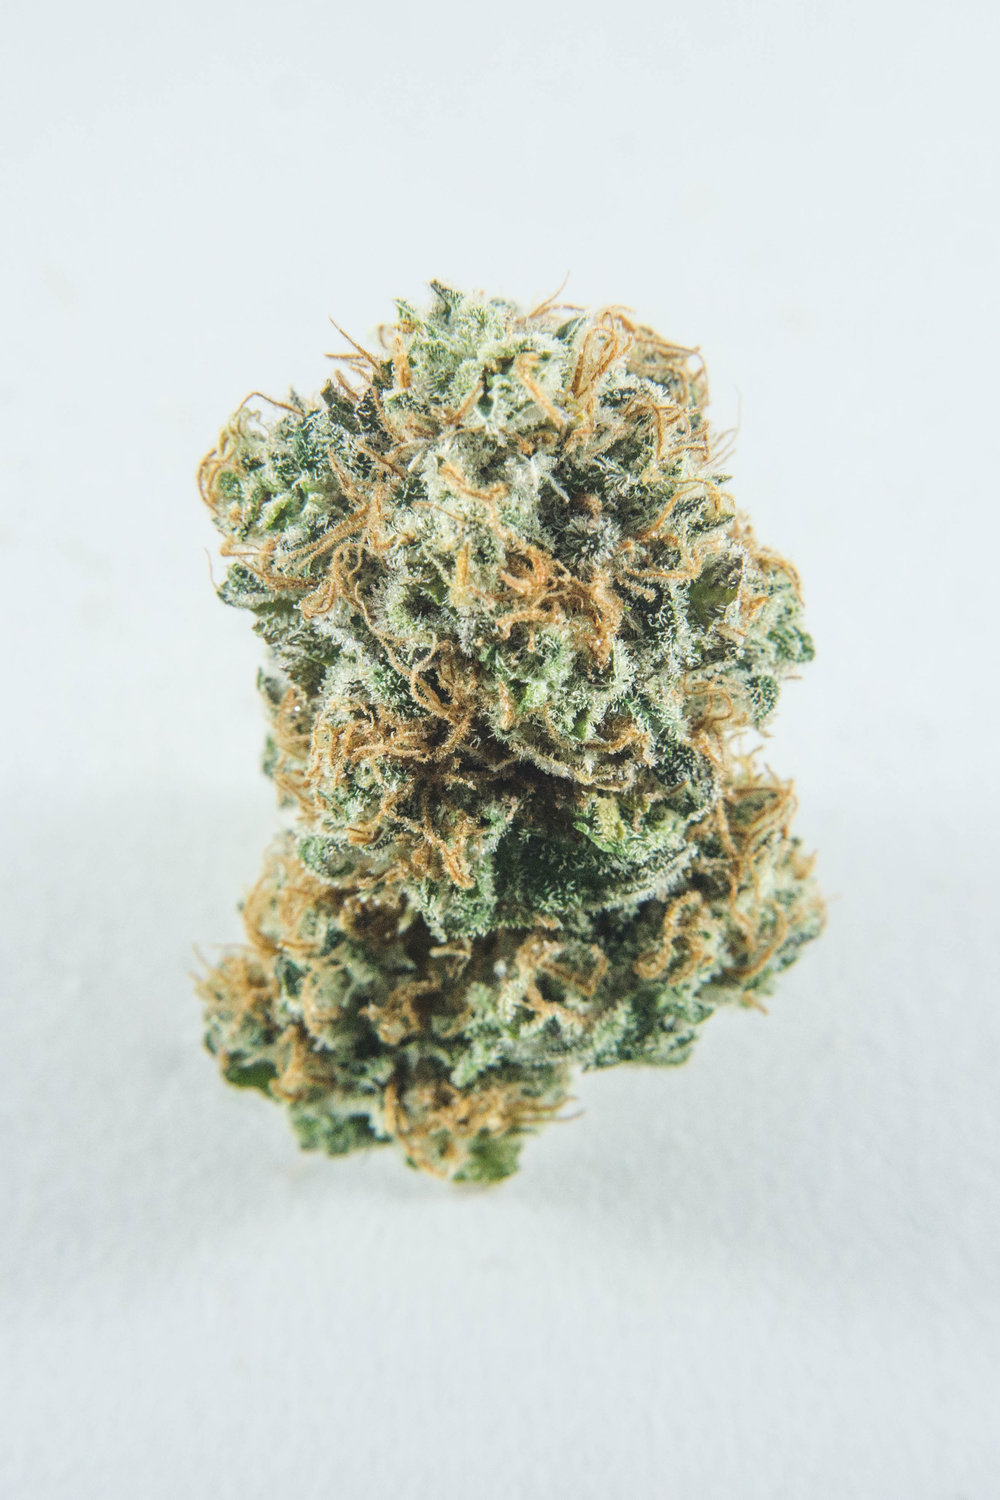 """Purely Sativa (100% Sativa) Haze-spice flavour profile with citrus notes to delight your senses. To put it bluntly, it is a dank smell. Durban Poison is said to derive from South Africa but is also questioned whether the seeds came from Amsterdam. Raved over its """"head lift"""", Durban Poison will leave you with a clear and level-headed high."""